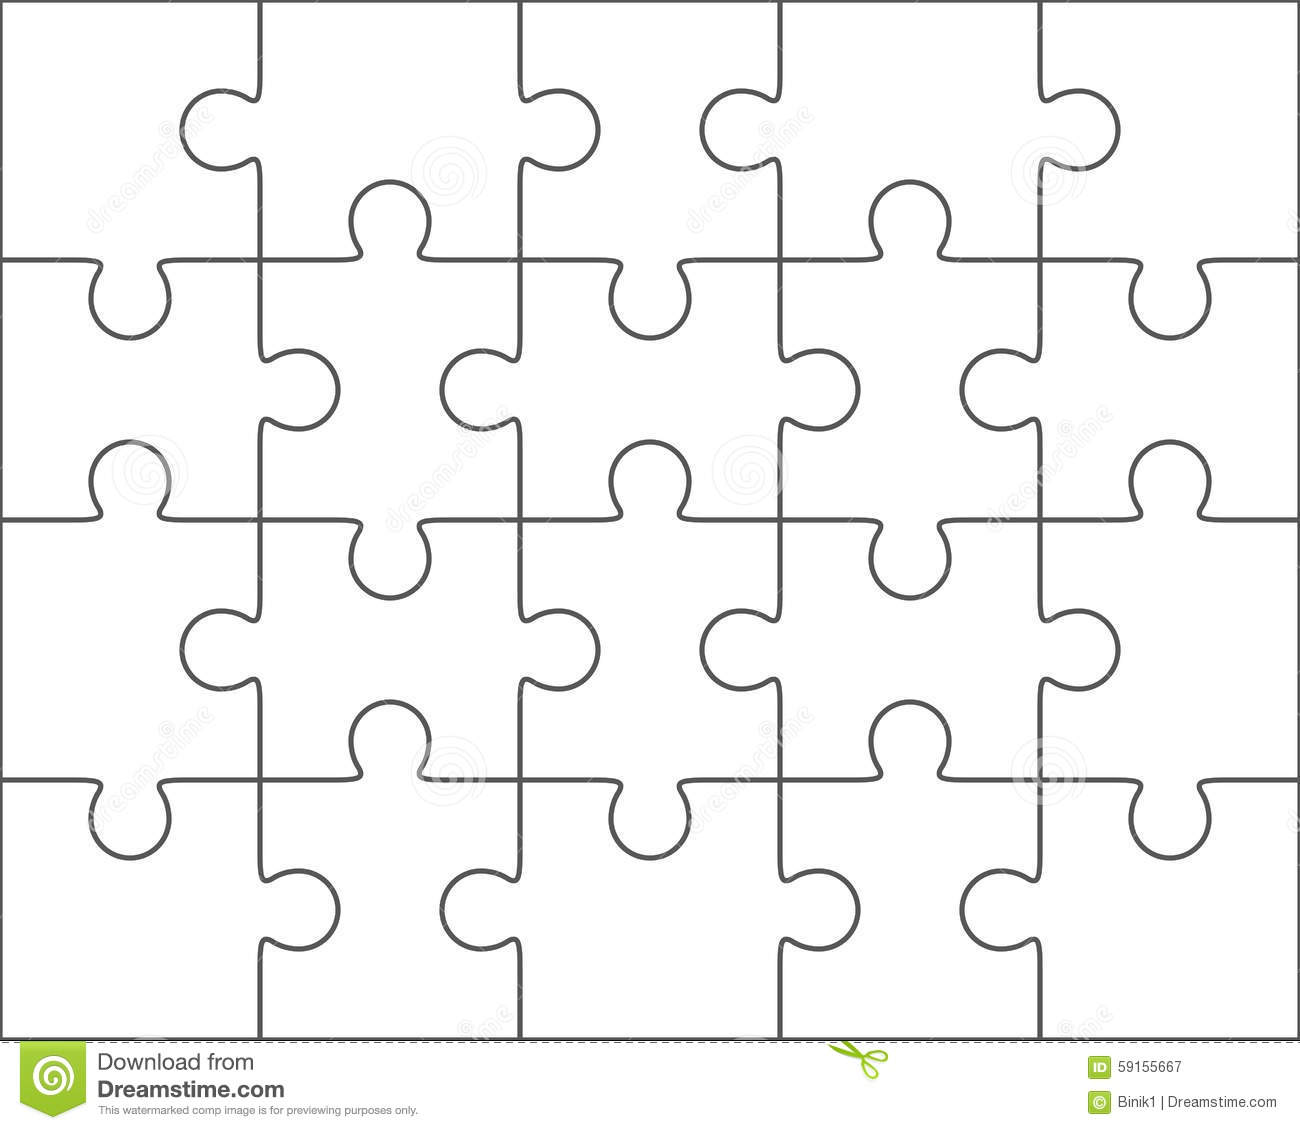 Jigsaw Puzzle Blank Template 4x5 Twenty Pieces Stock Illustration